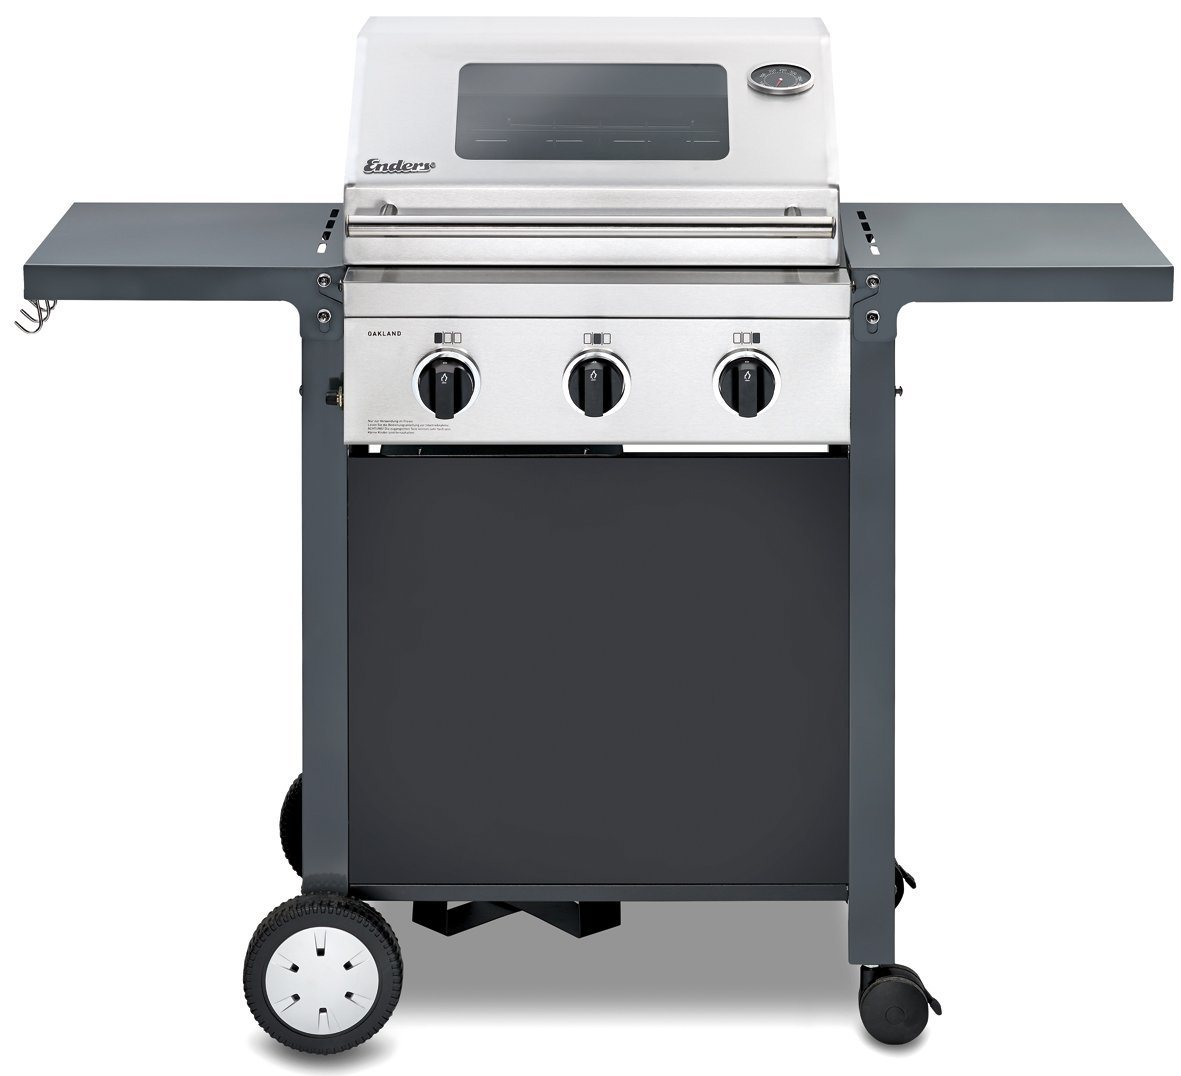 Enders Gasgrill San Diego 3 Test Jamie Oliver Gasgrill Expertentesten